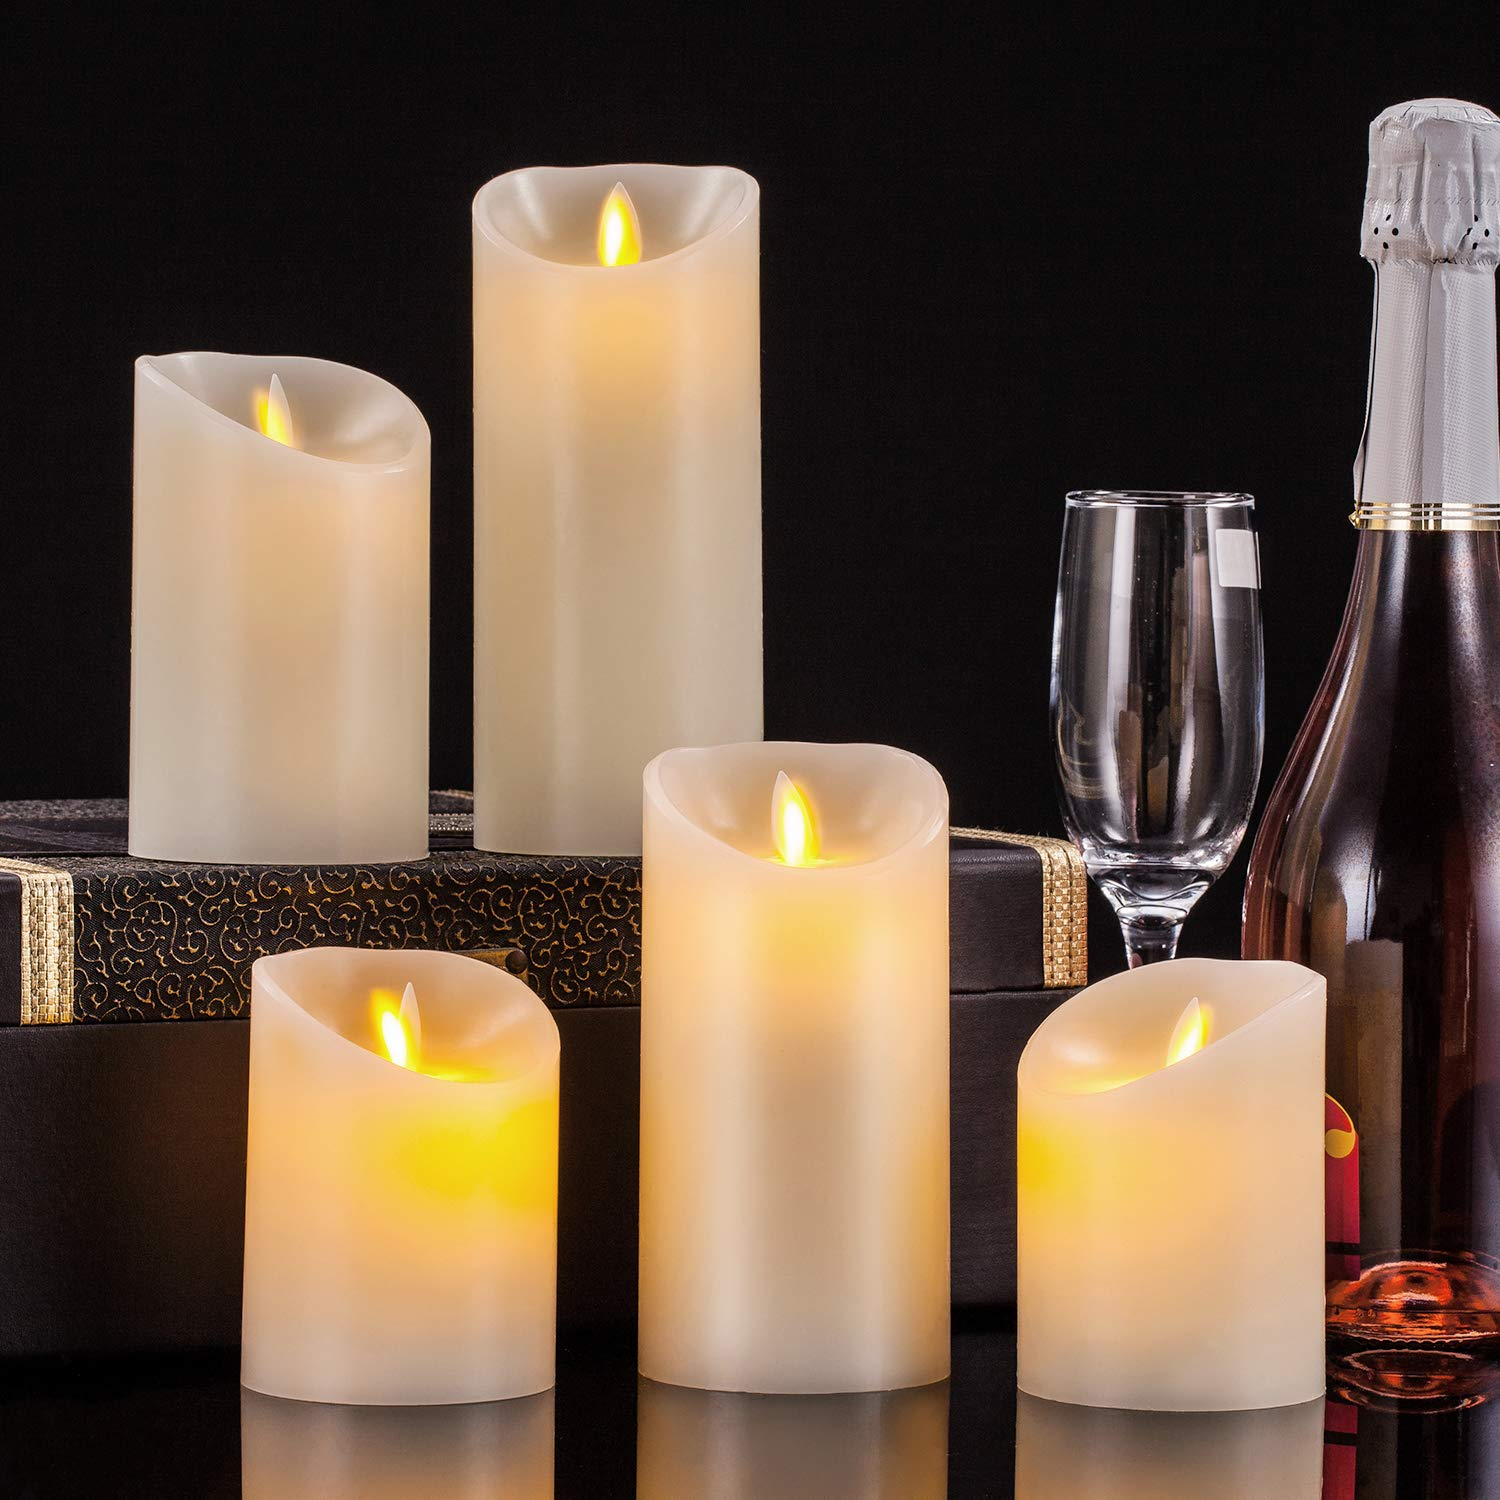 Pandaing Flameless Candles Set of 5 (D 3'' x H 4'' 4'' 5'' 6'' 7'') Battery Operated LED Pillar Real Wax Moving Flame Flickering Electric Candle Gift Set with Remote Control Cycling 24 Hours Timer by Pandaing (Image #4)